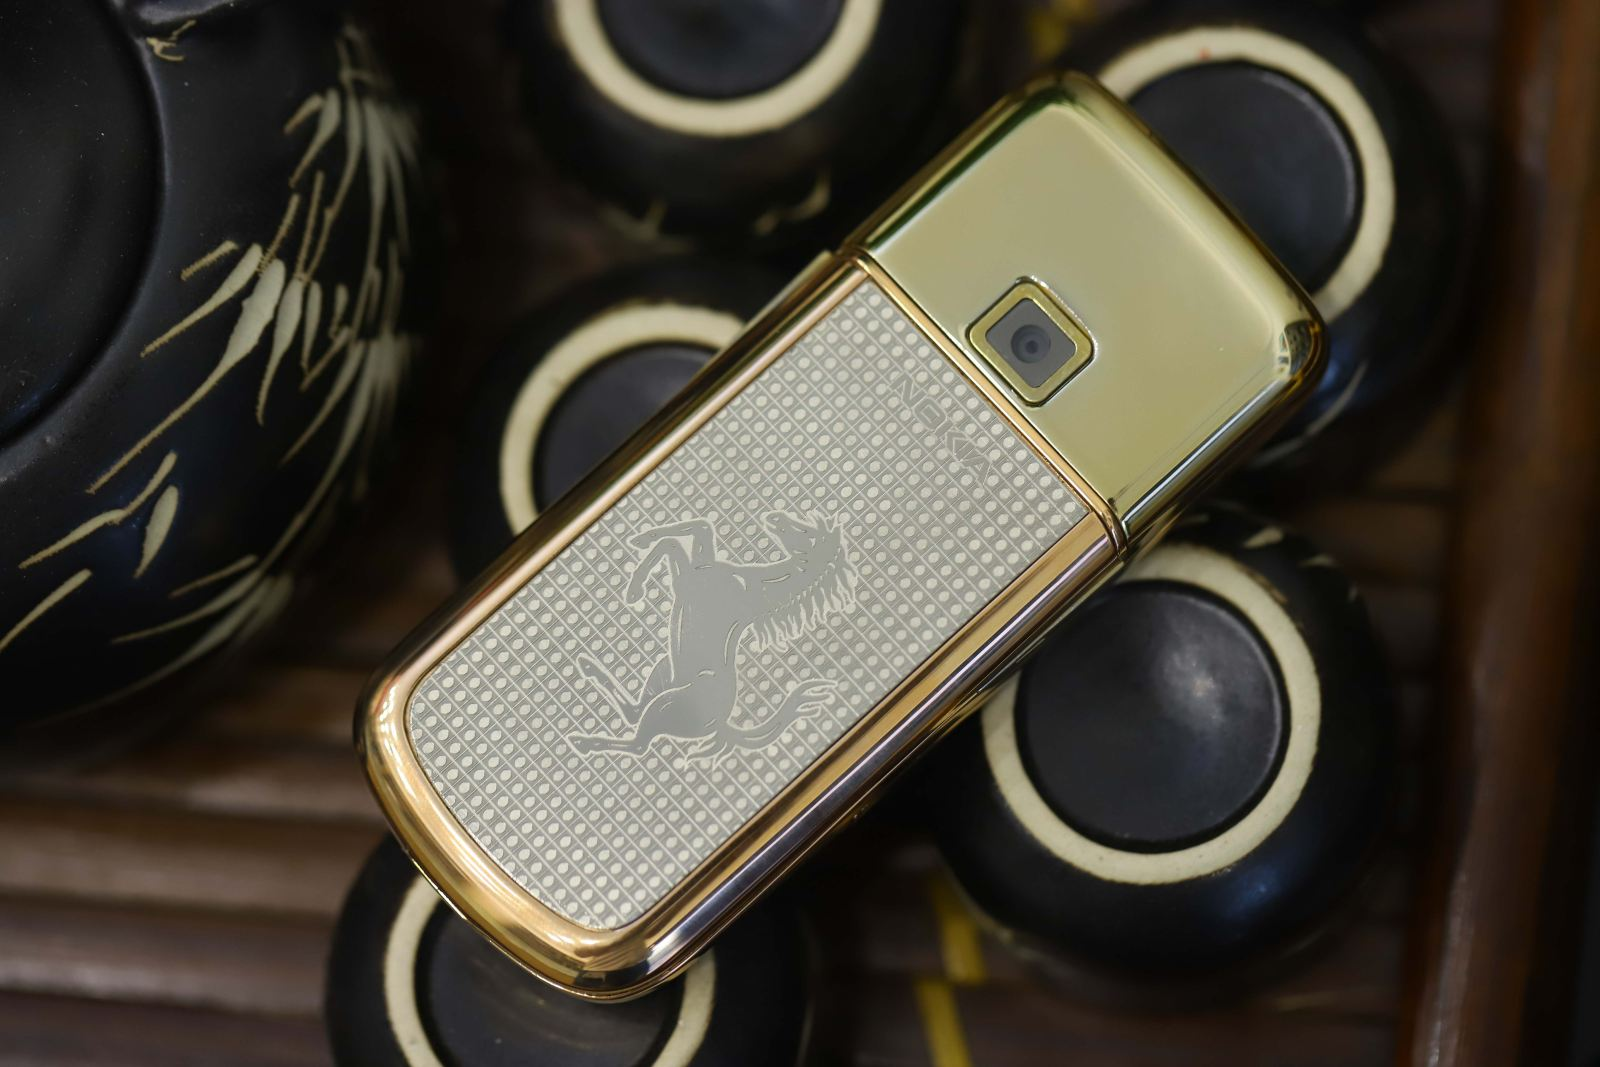 Nokia 8800 rose gold